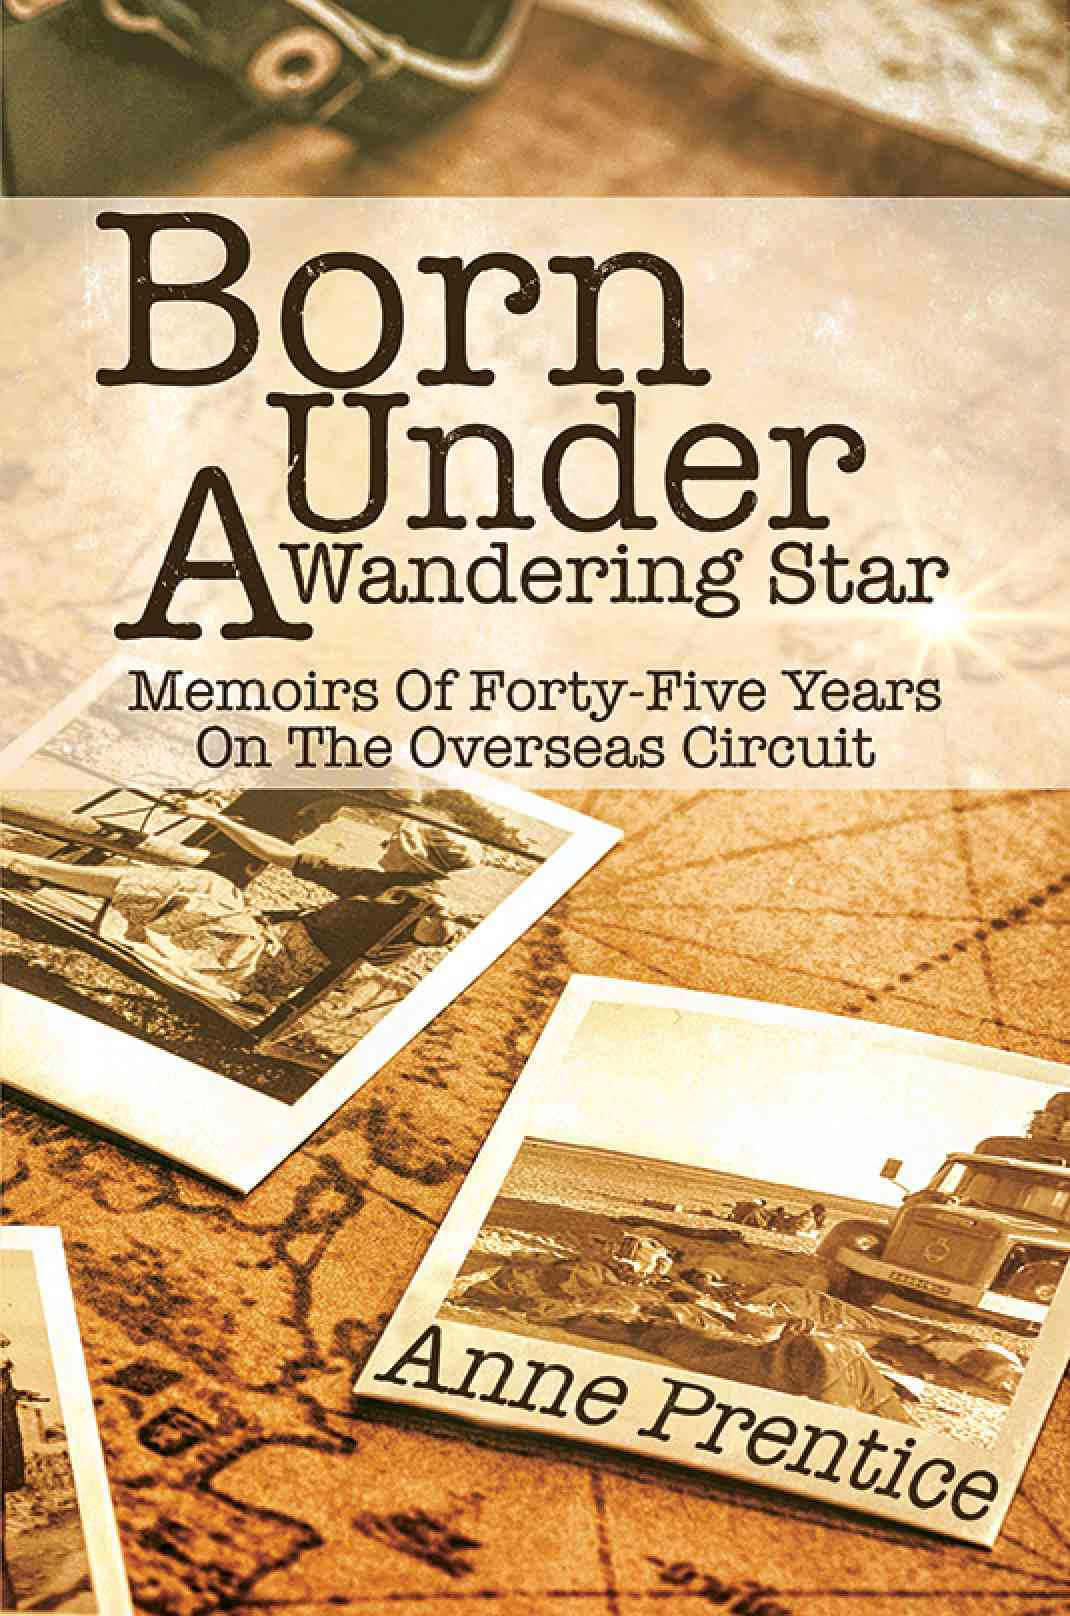 Born Under A Wandering Star: Memoirs Of Forty-Five Years On The Overseas Circuit